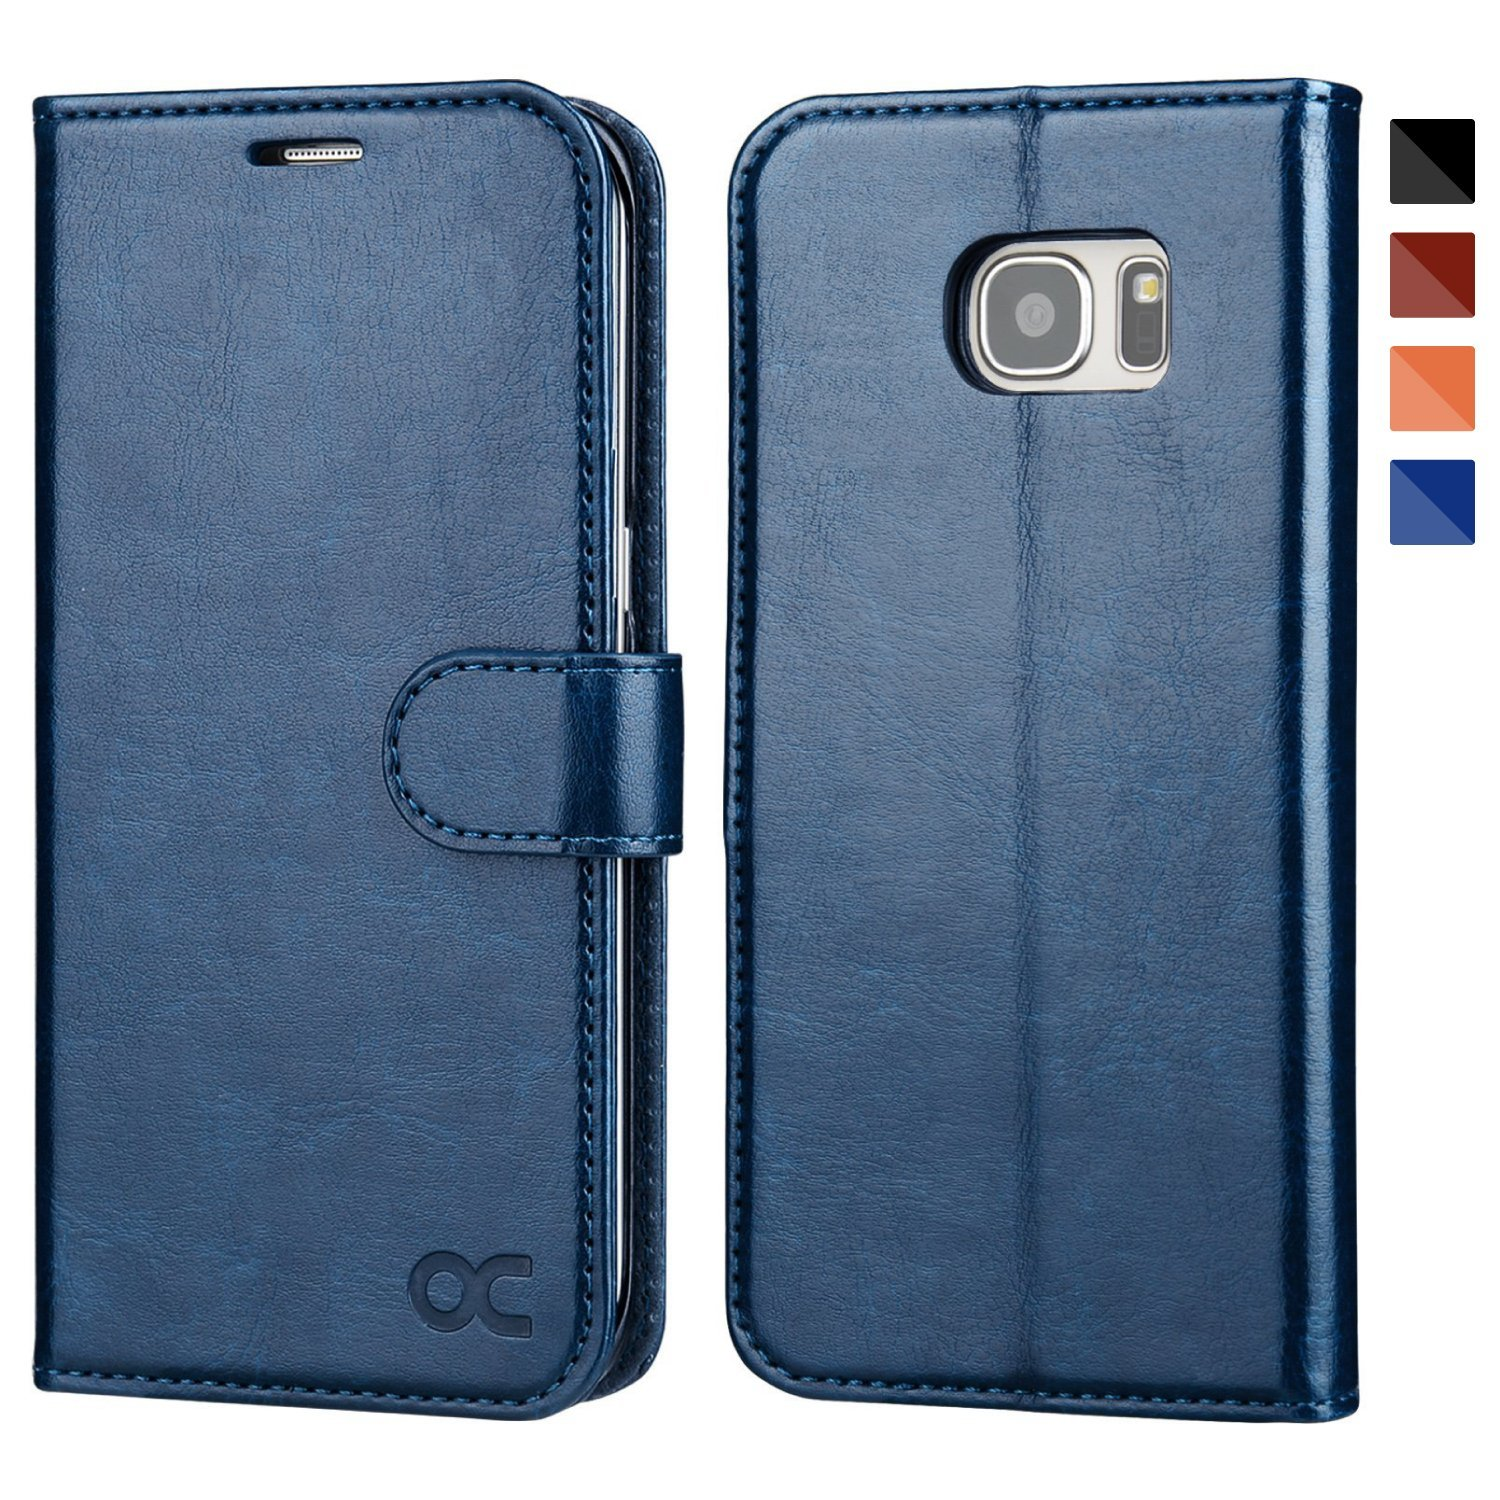 hoomil premium leather case - HD1500×1500